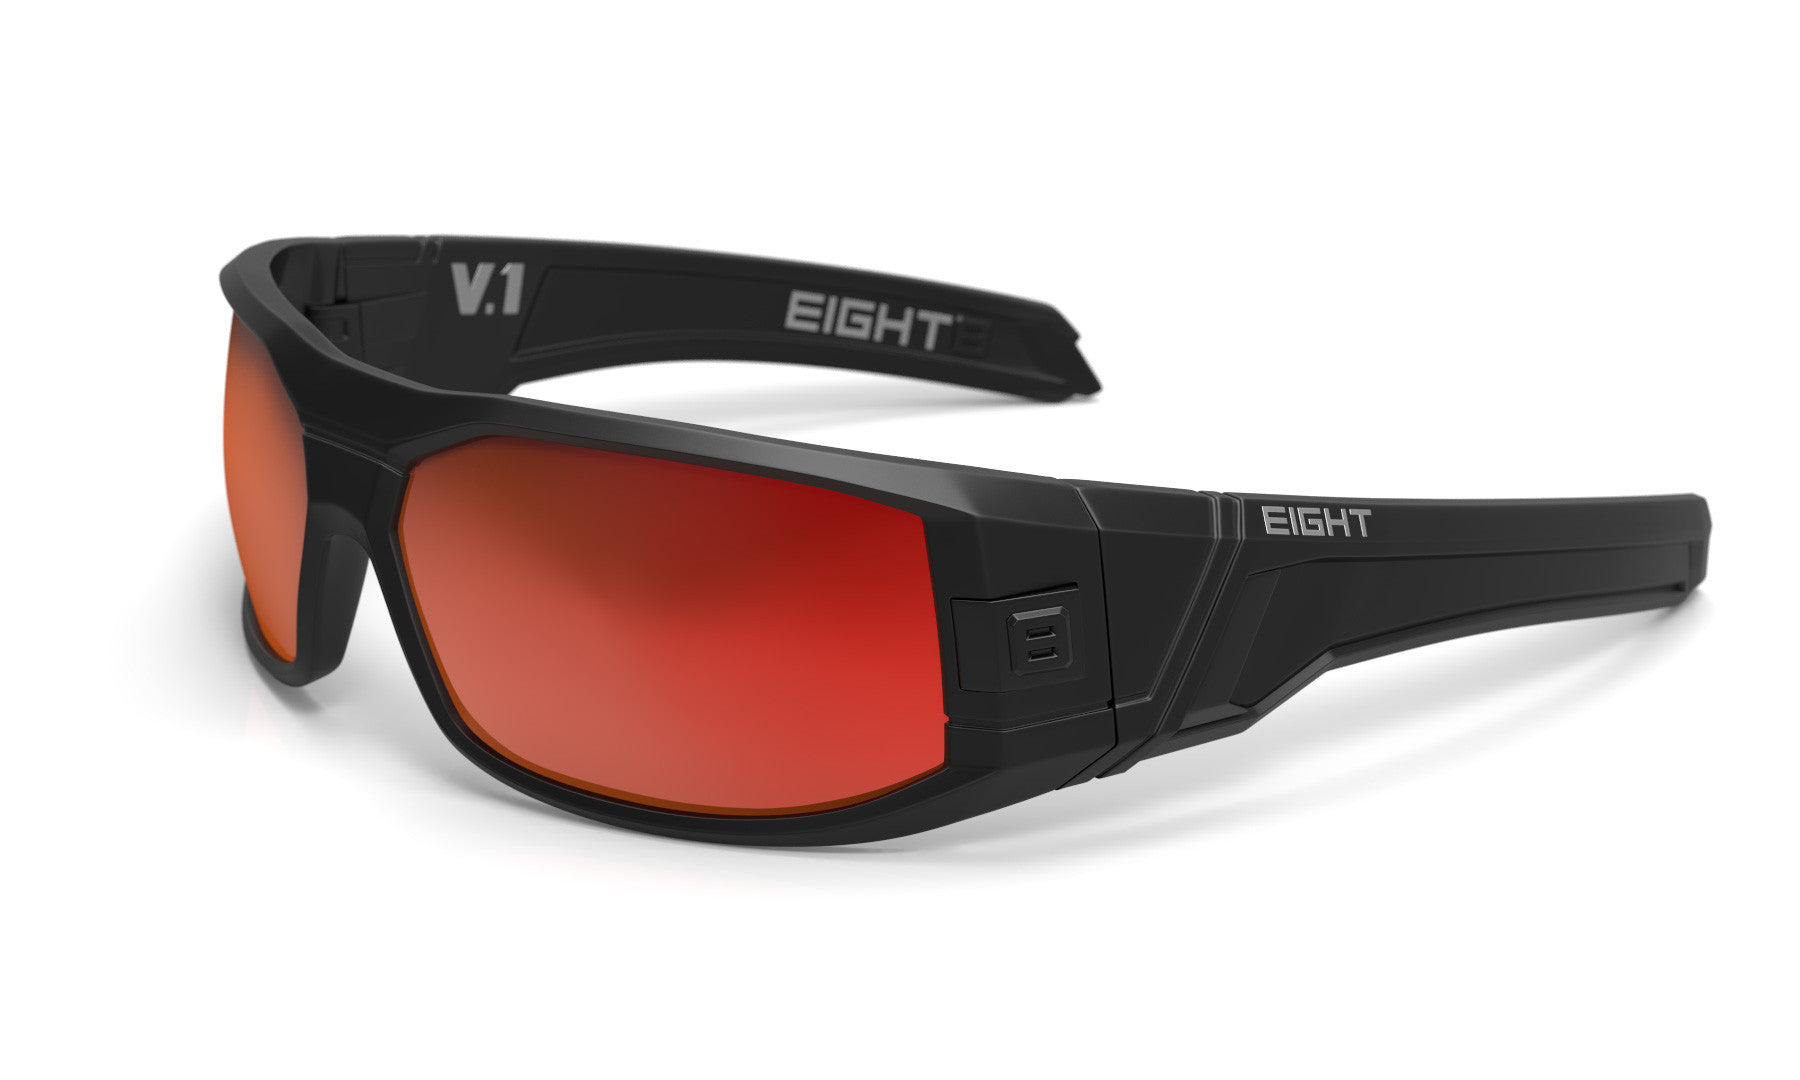 b9023e1fe4 V.1 - Matte Black - Red REVO Polarized – Eight Eyewear